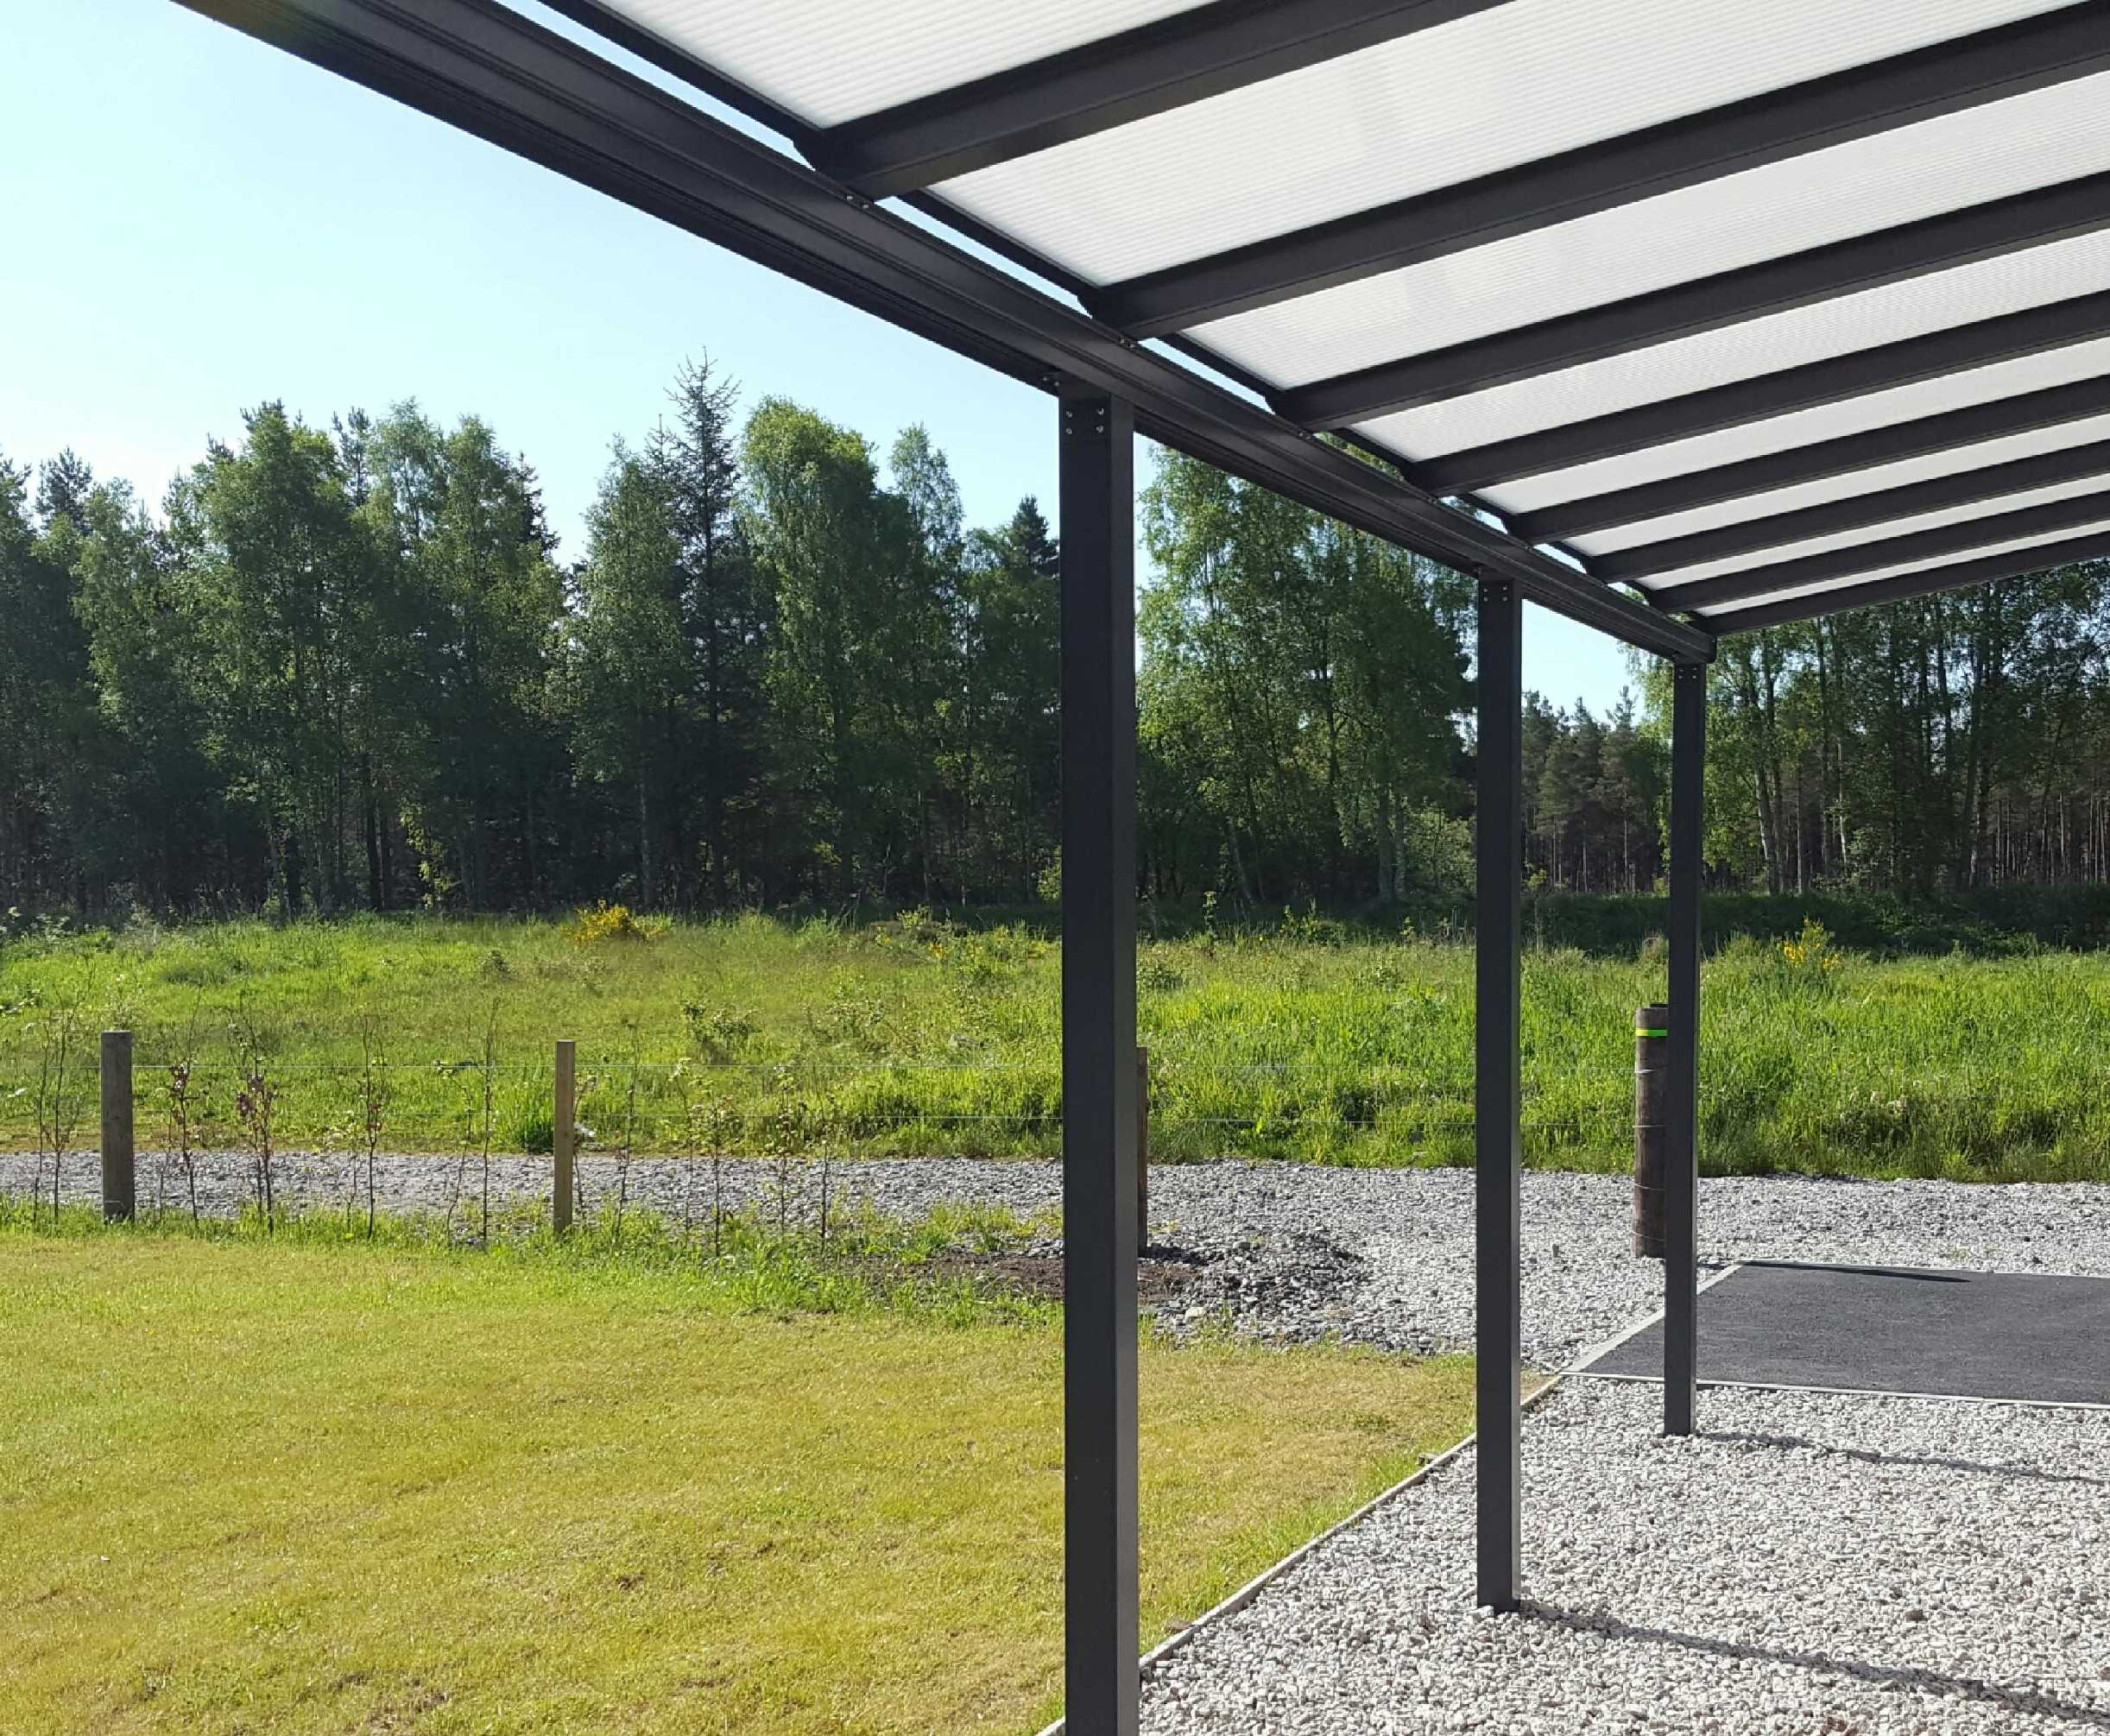 Omega Smart Lean-To Canopy, Anthracite Grey, UNGLAZED for 6mm Glazing - 10.5m (W) x 2.0m (P), (5) Supporting Posts